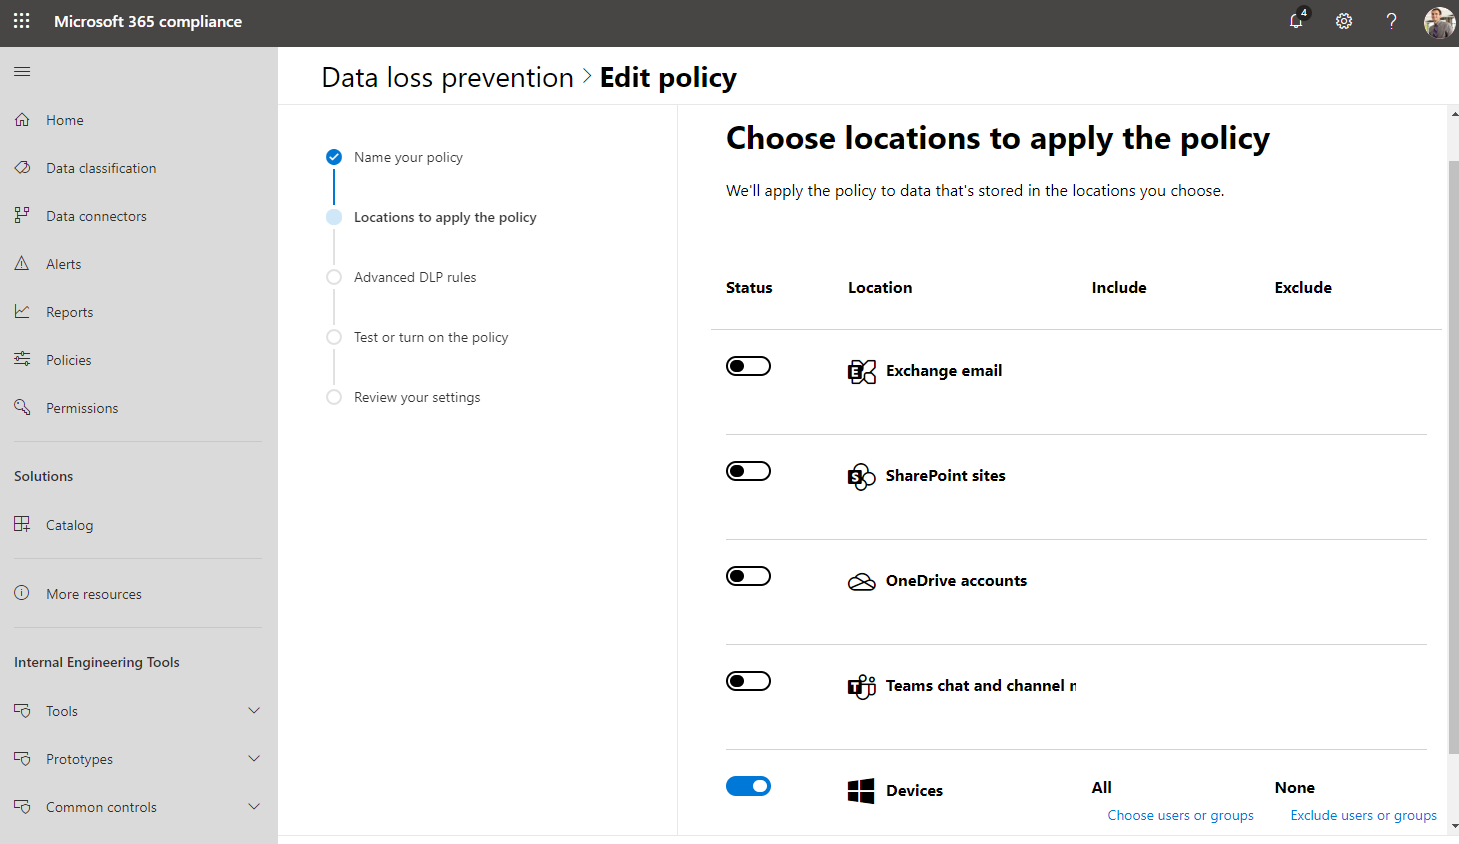 An image showing how you can manage your data loss prevention policies across Microsoft 365 from one location – the Microsoft 365 compliance center.